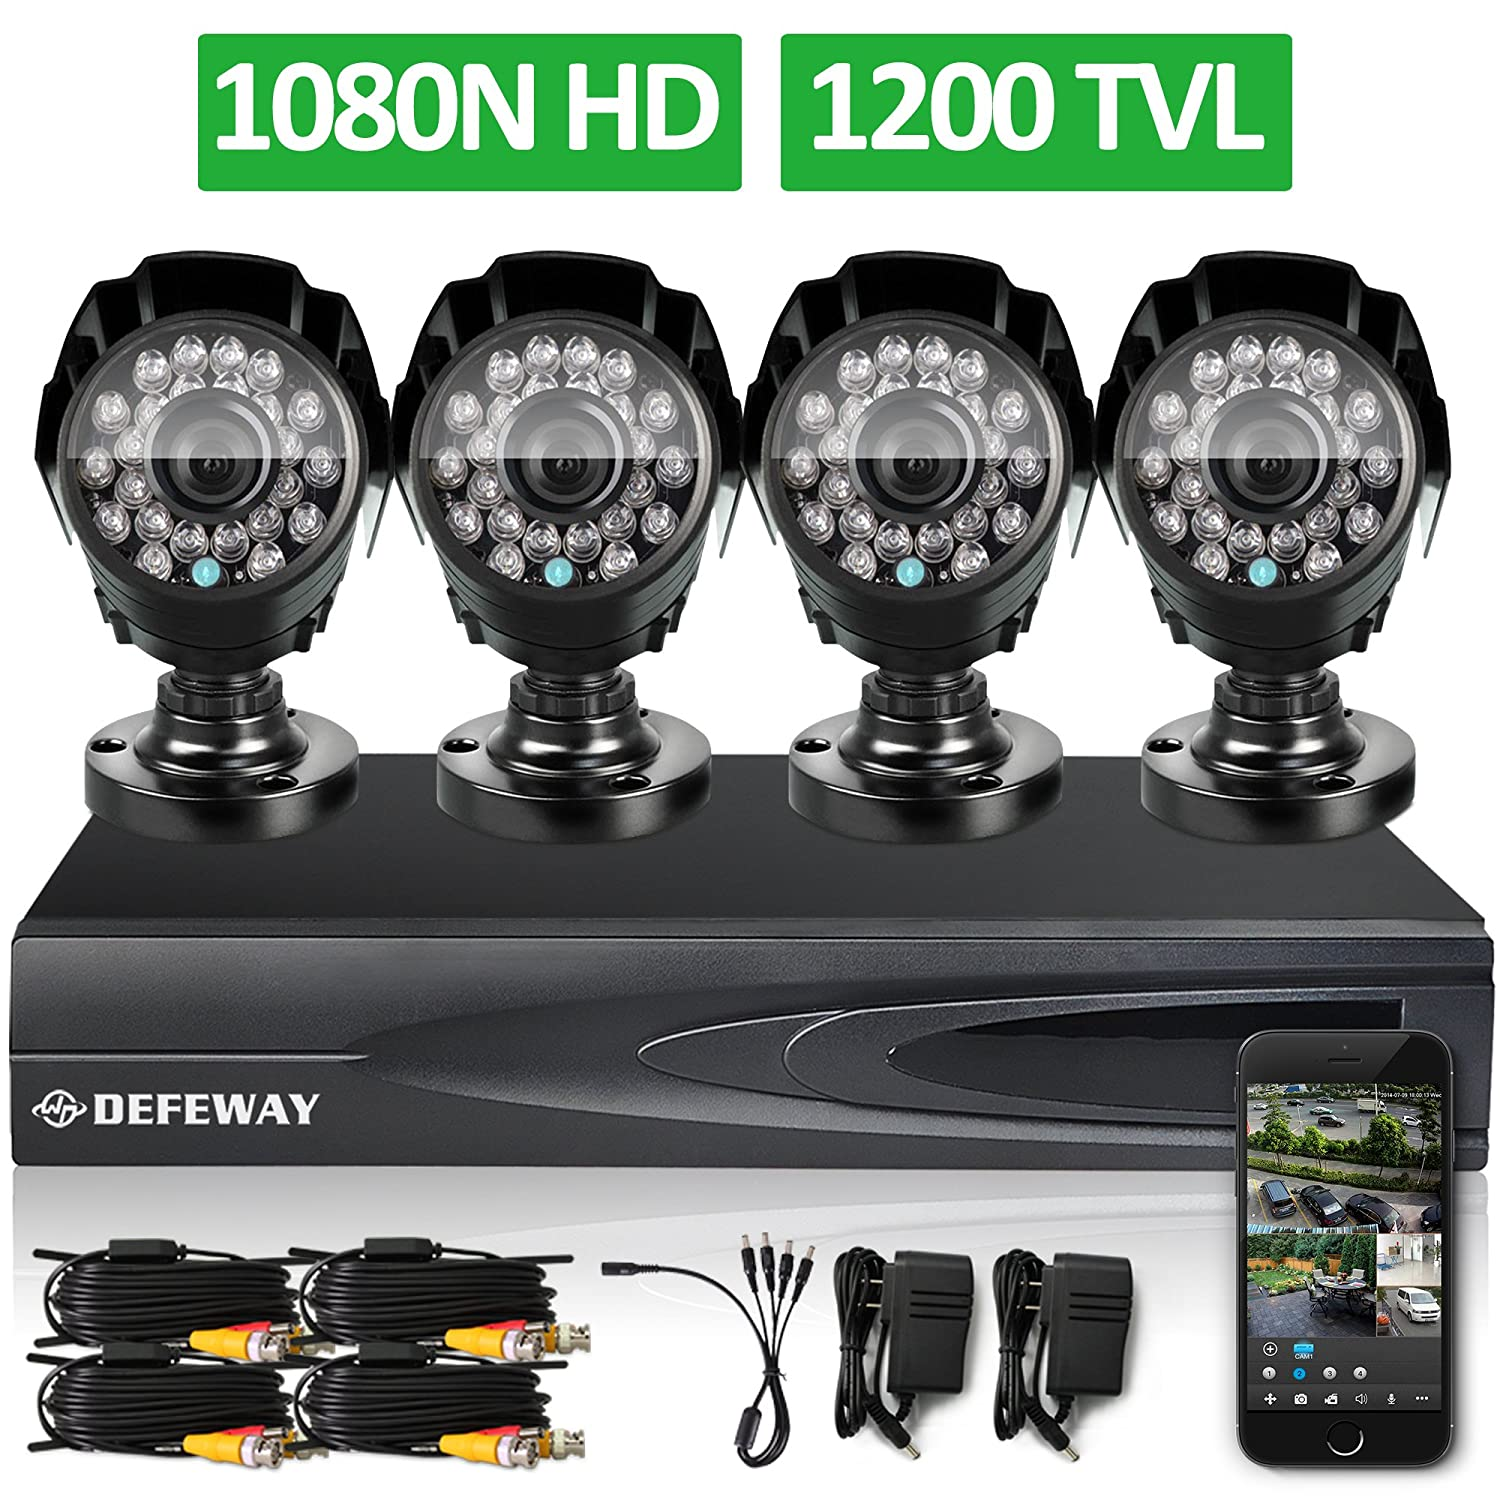 best security cameras for home use  - DEFEWAY 1080N DVR 1200TVL 720P HD Outdoor